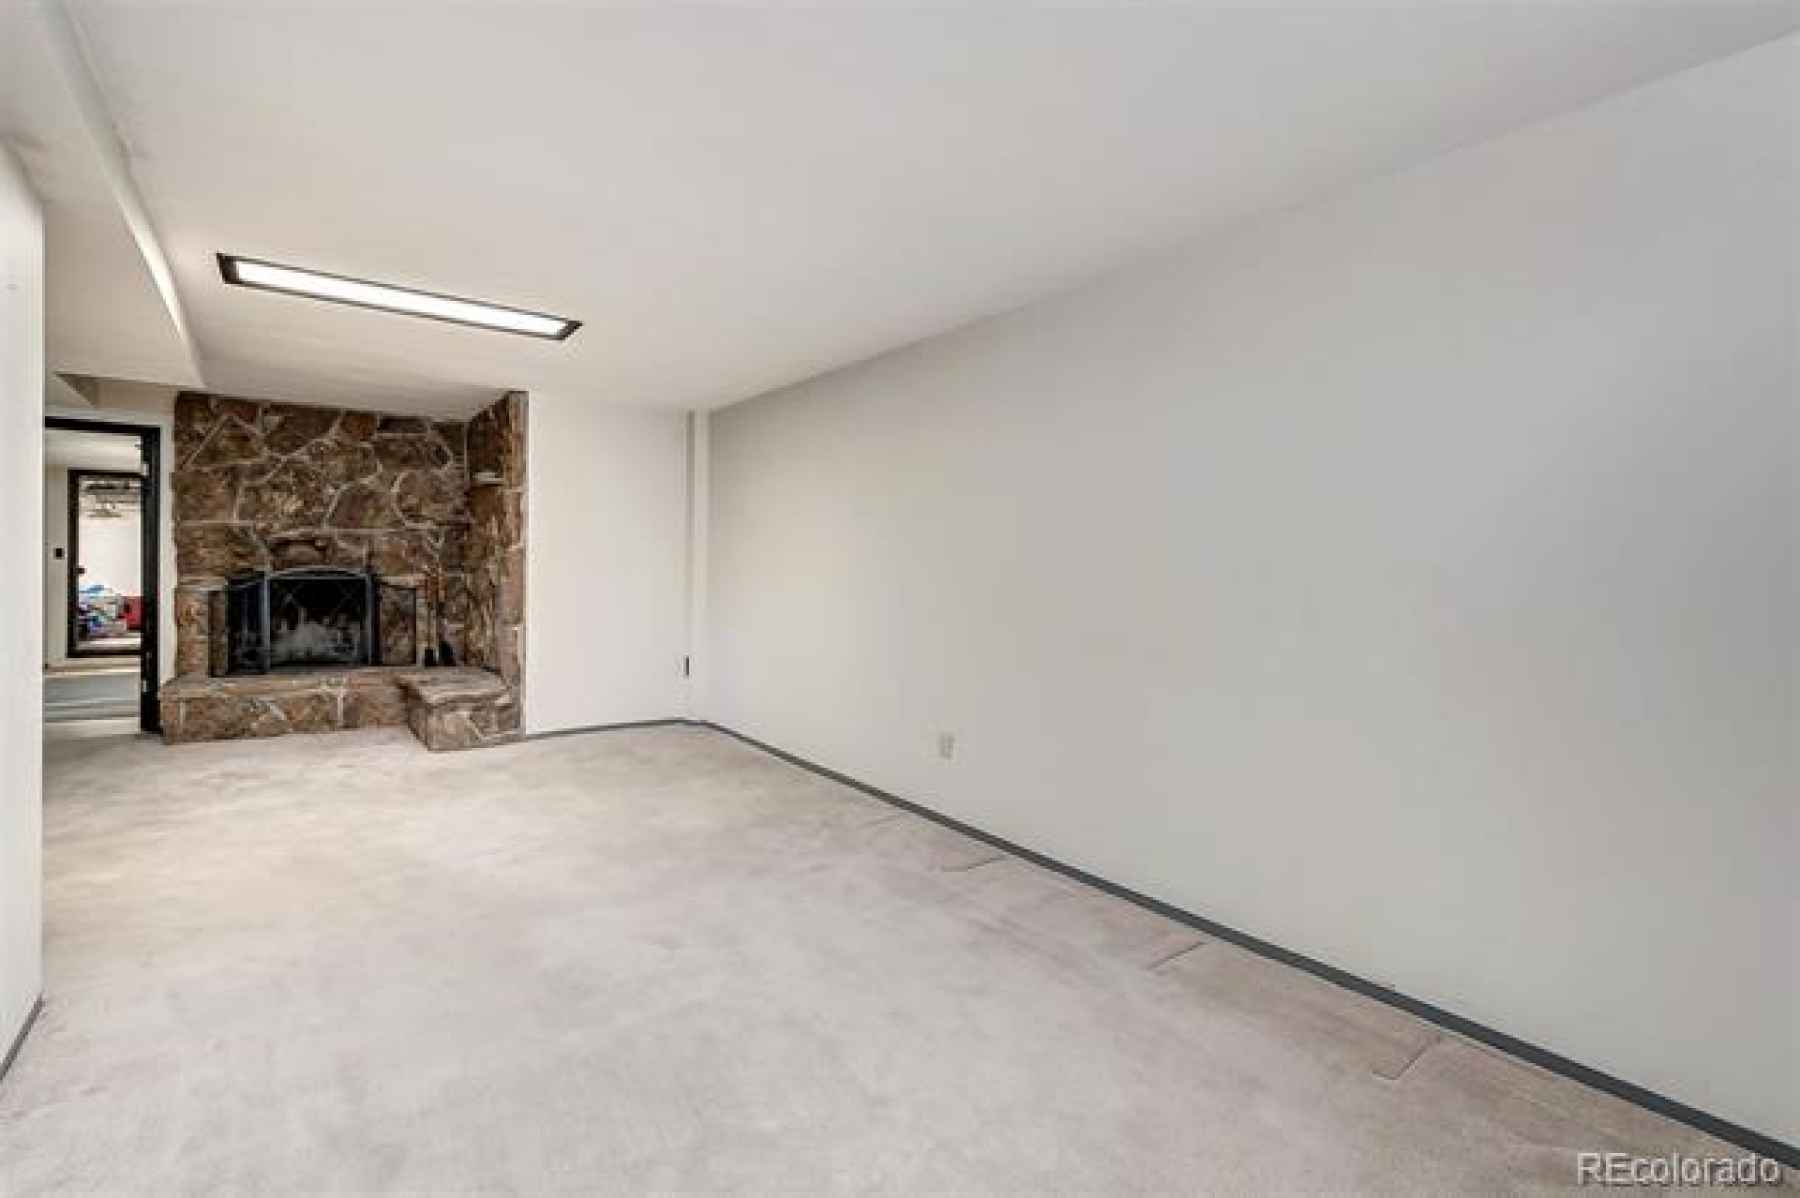 large open family room area in the basement